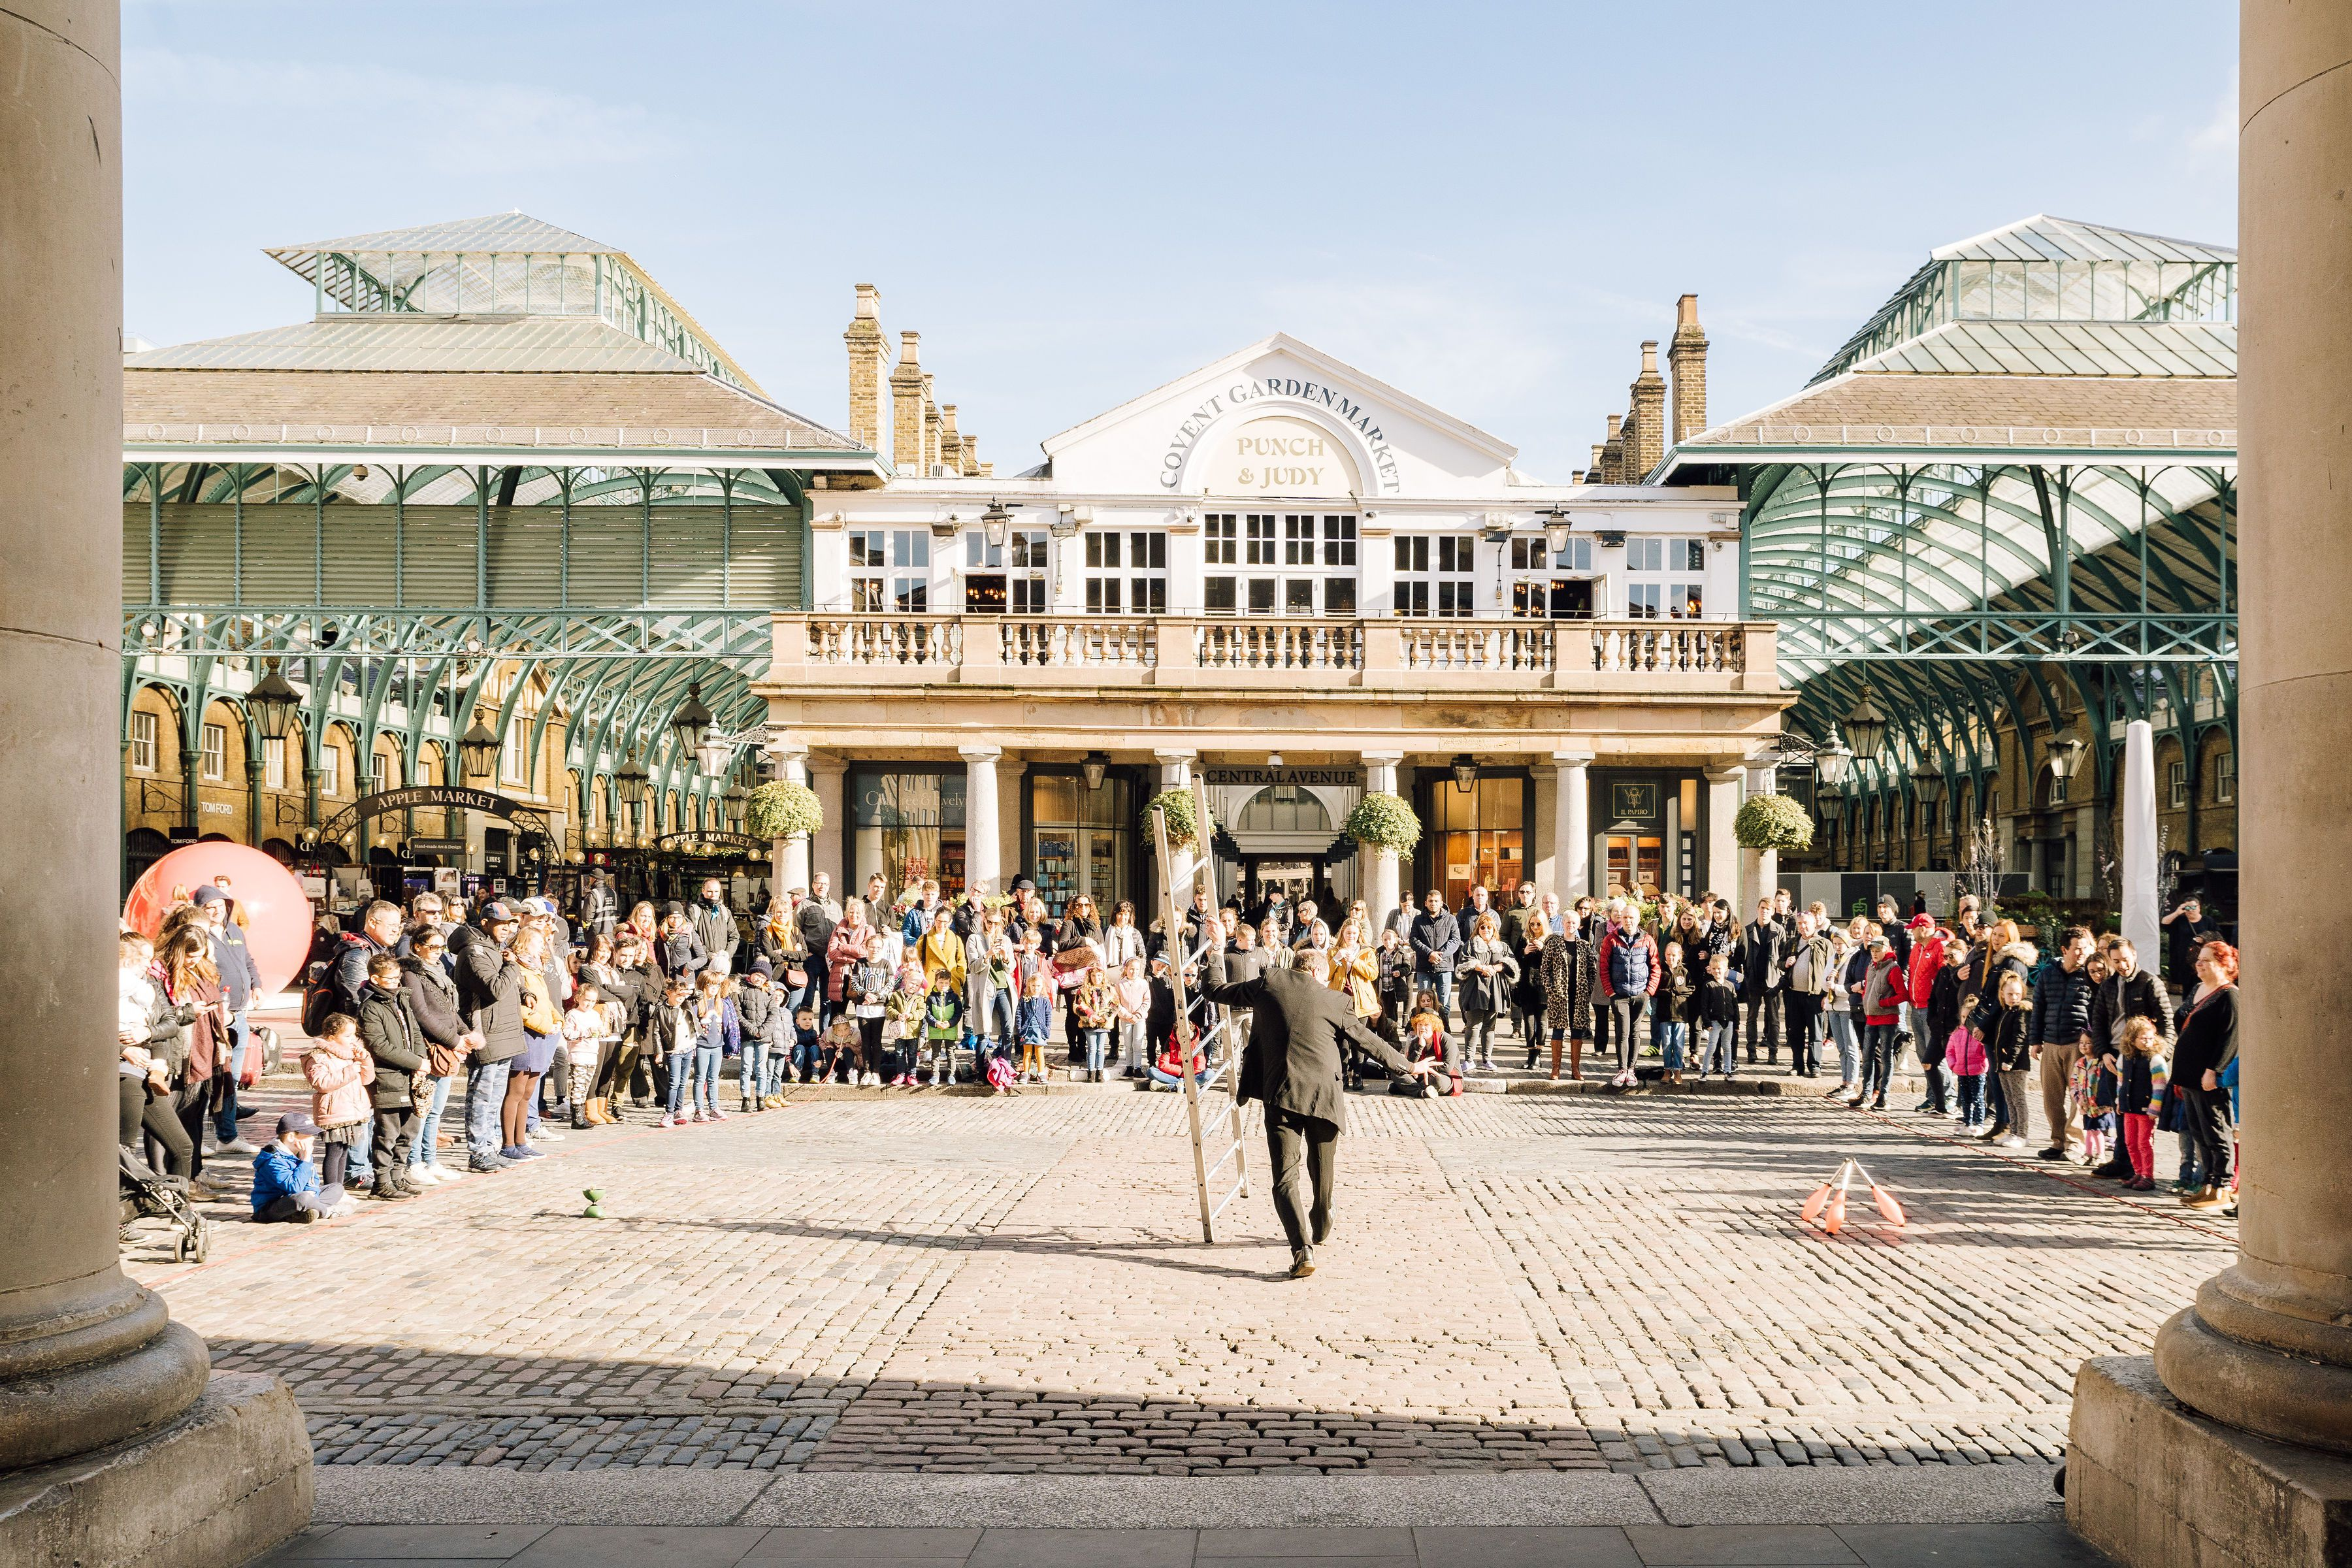 A street performer in Covent Garden